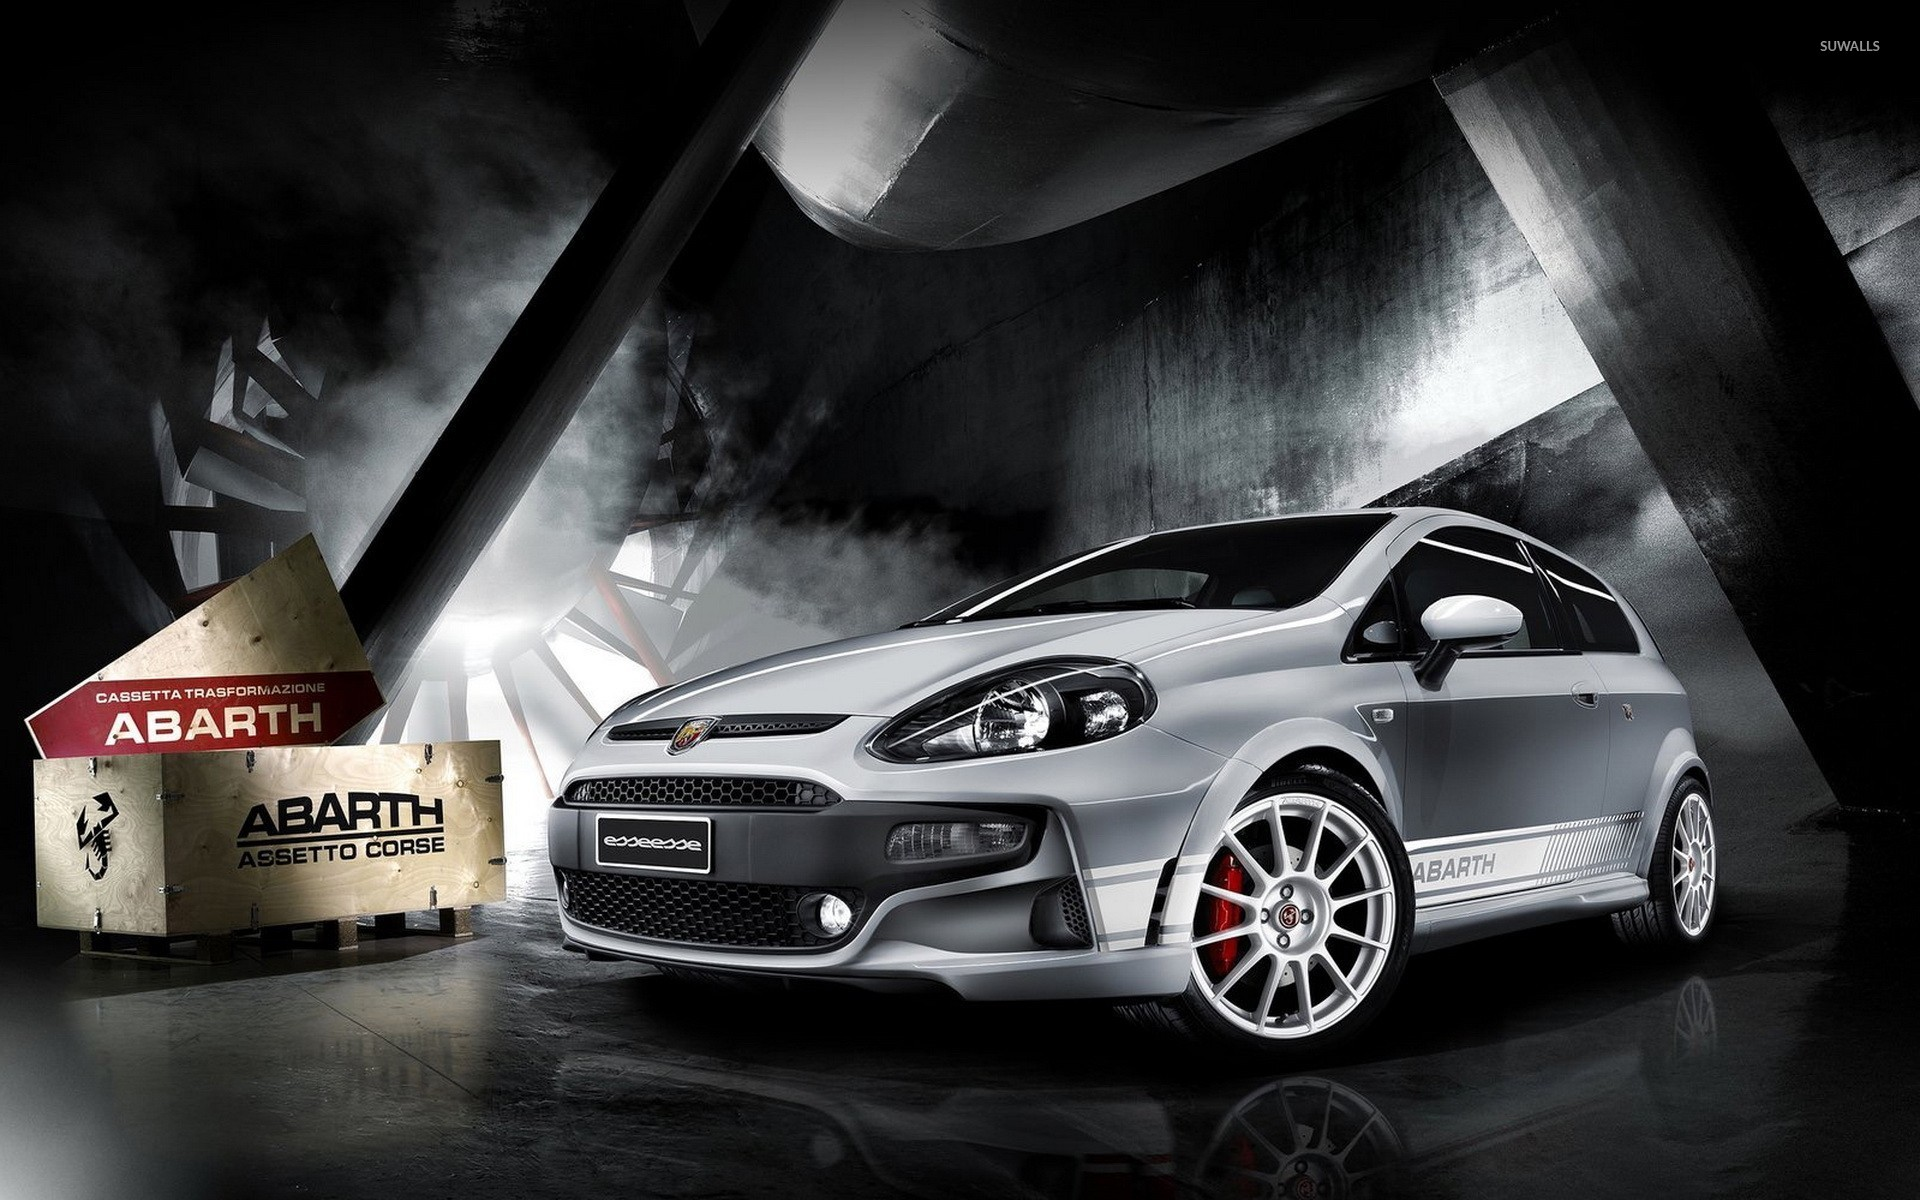 Abarth Fiat Punto Wallpaper Car Wallpapers 8430